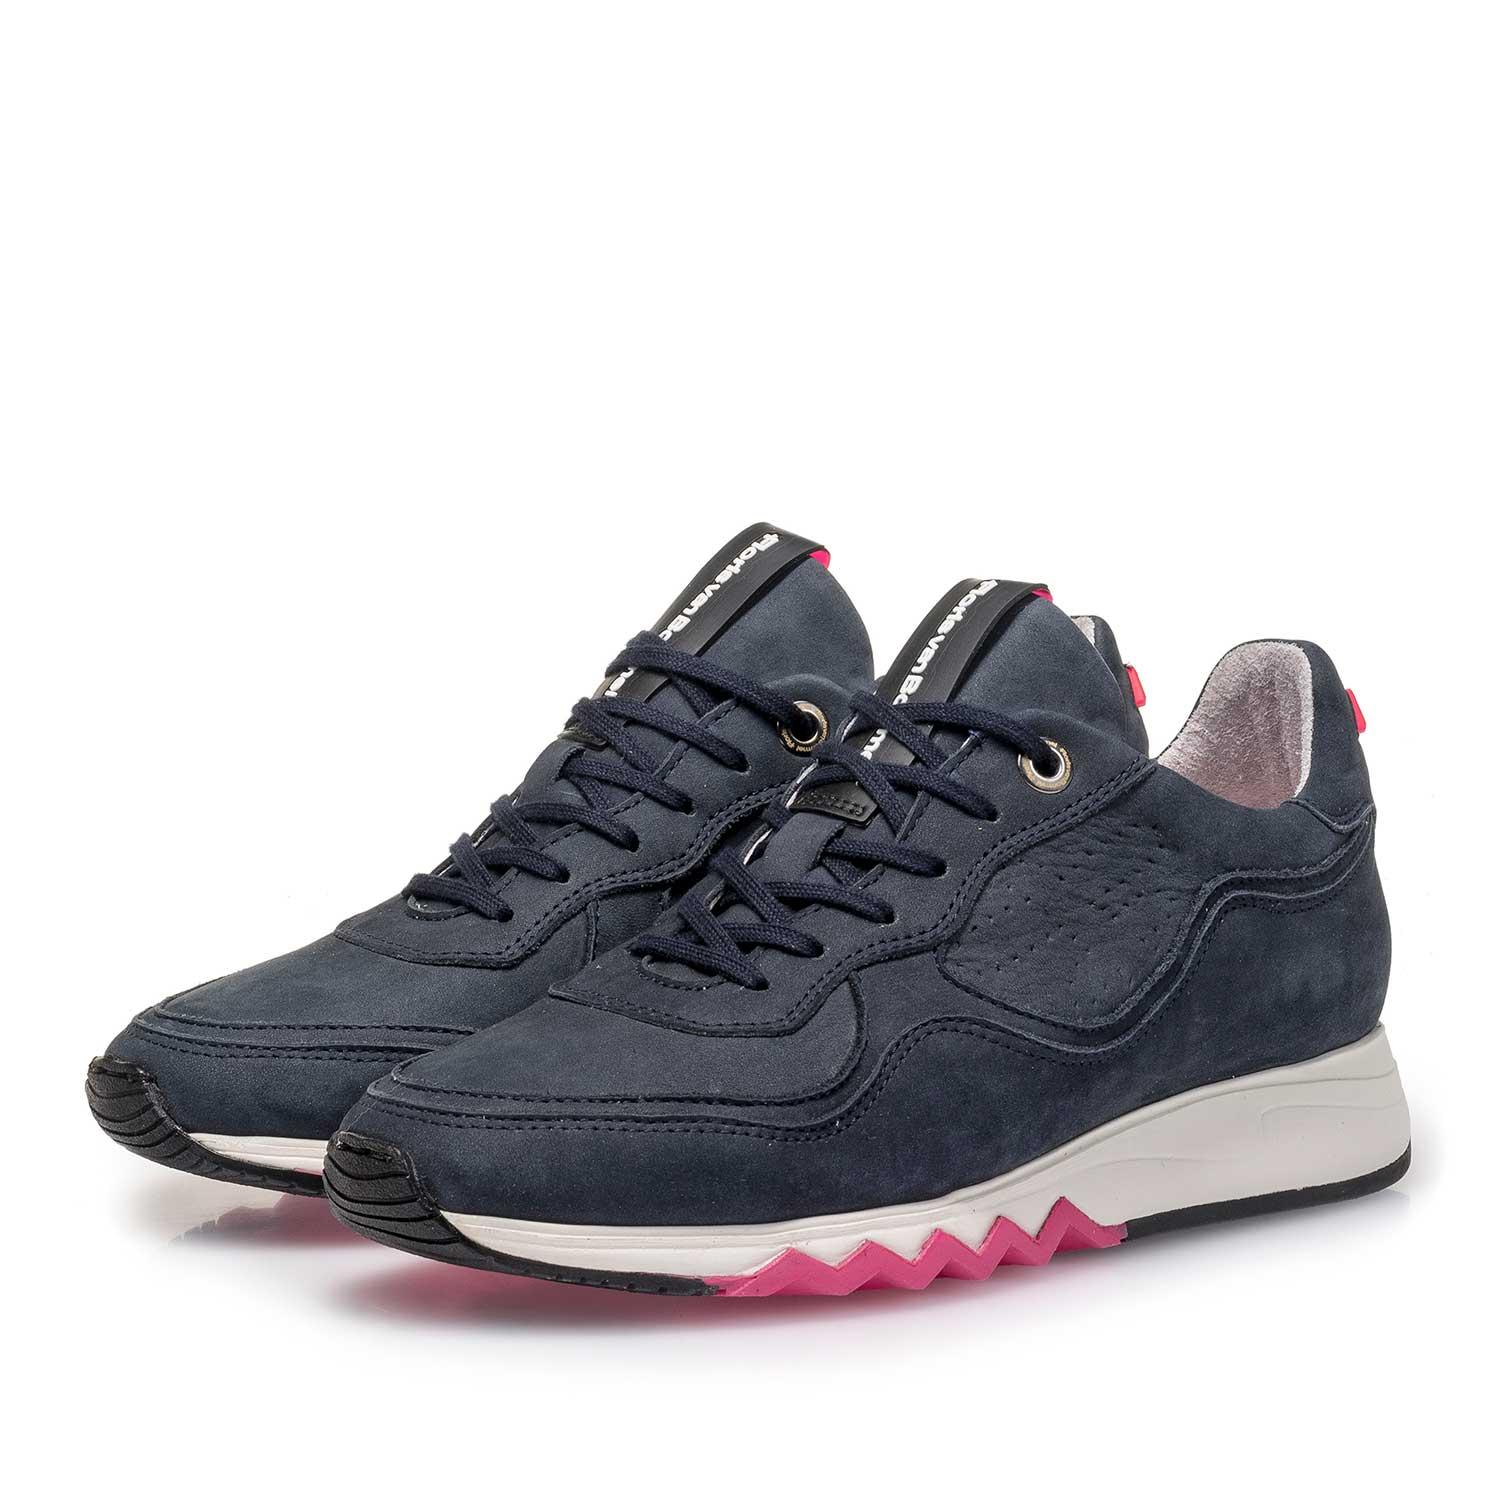 85265/10 - Dark blue nubuck leather sneaker